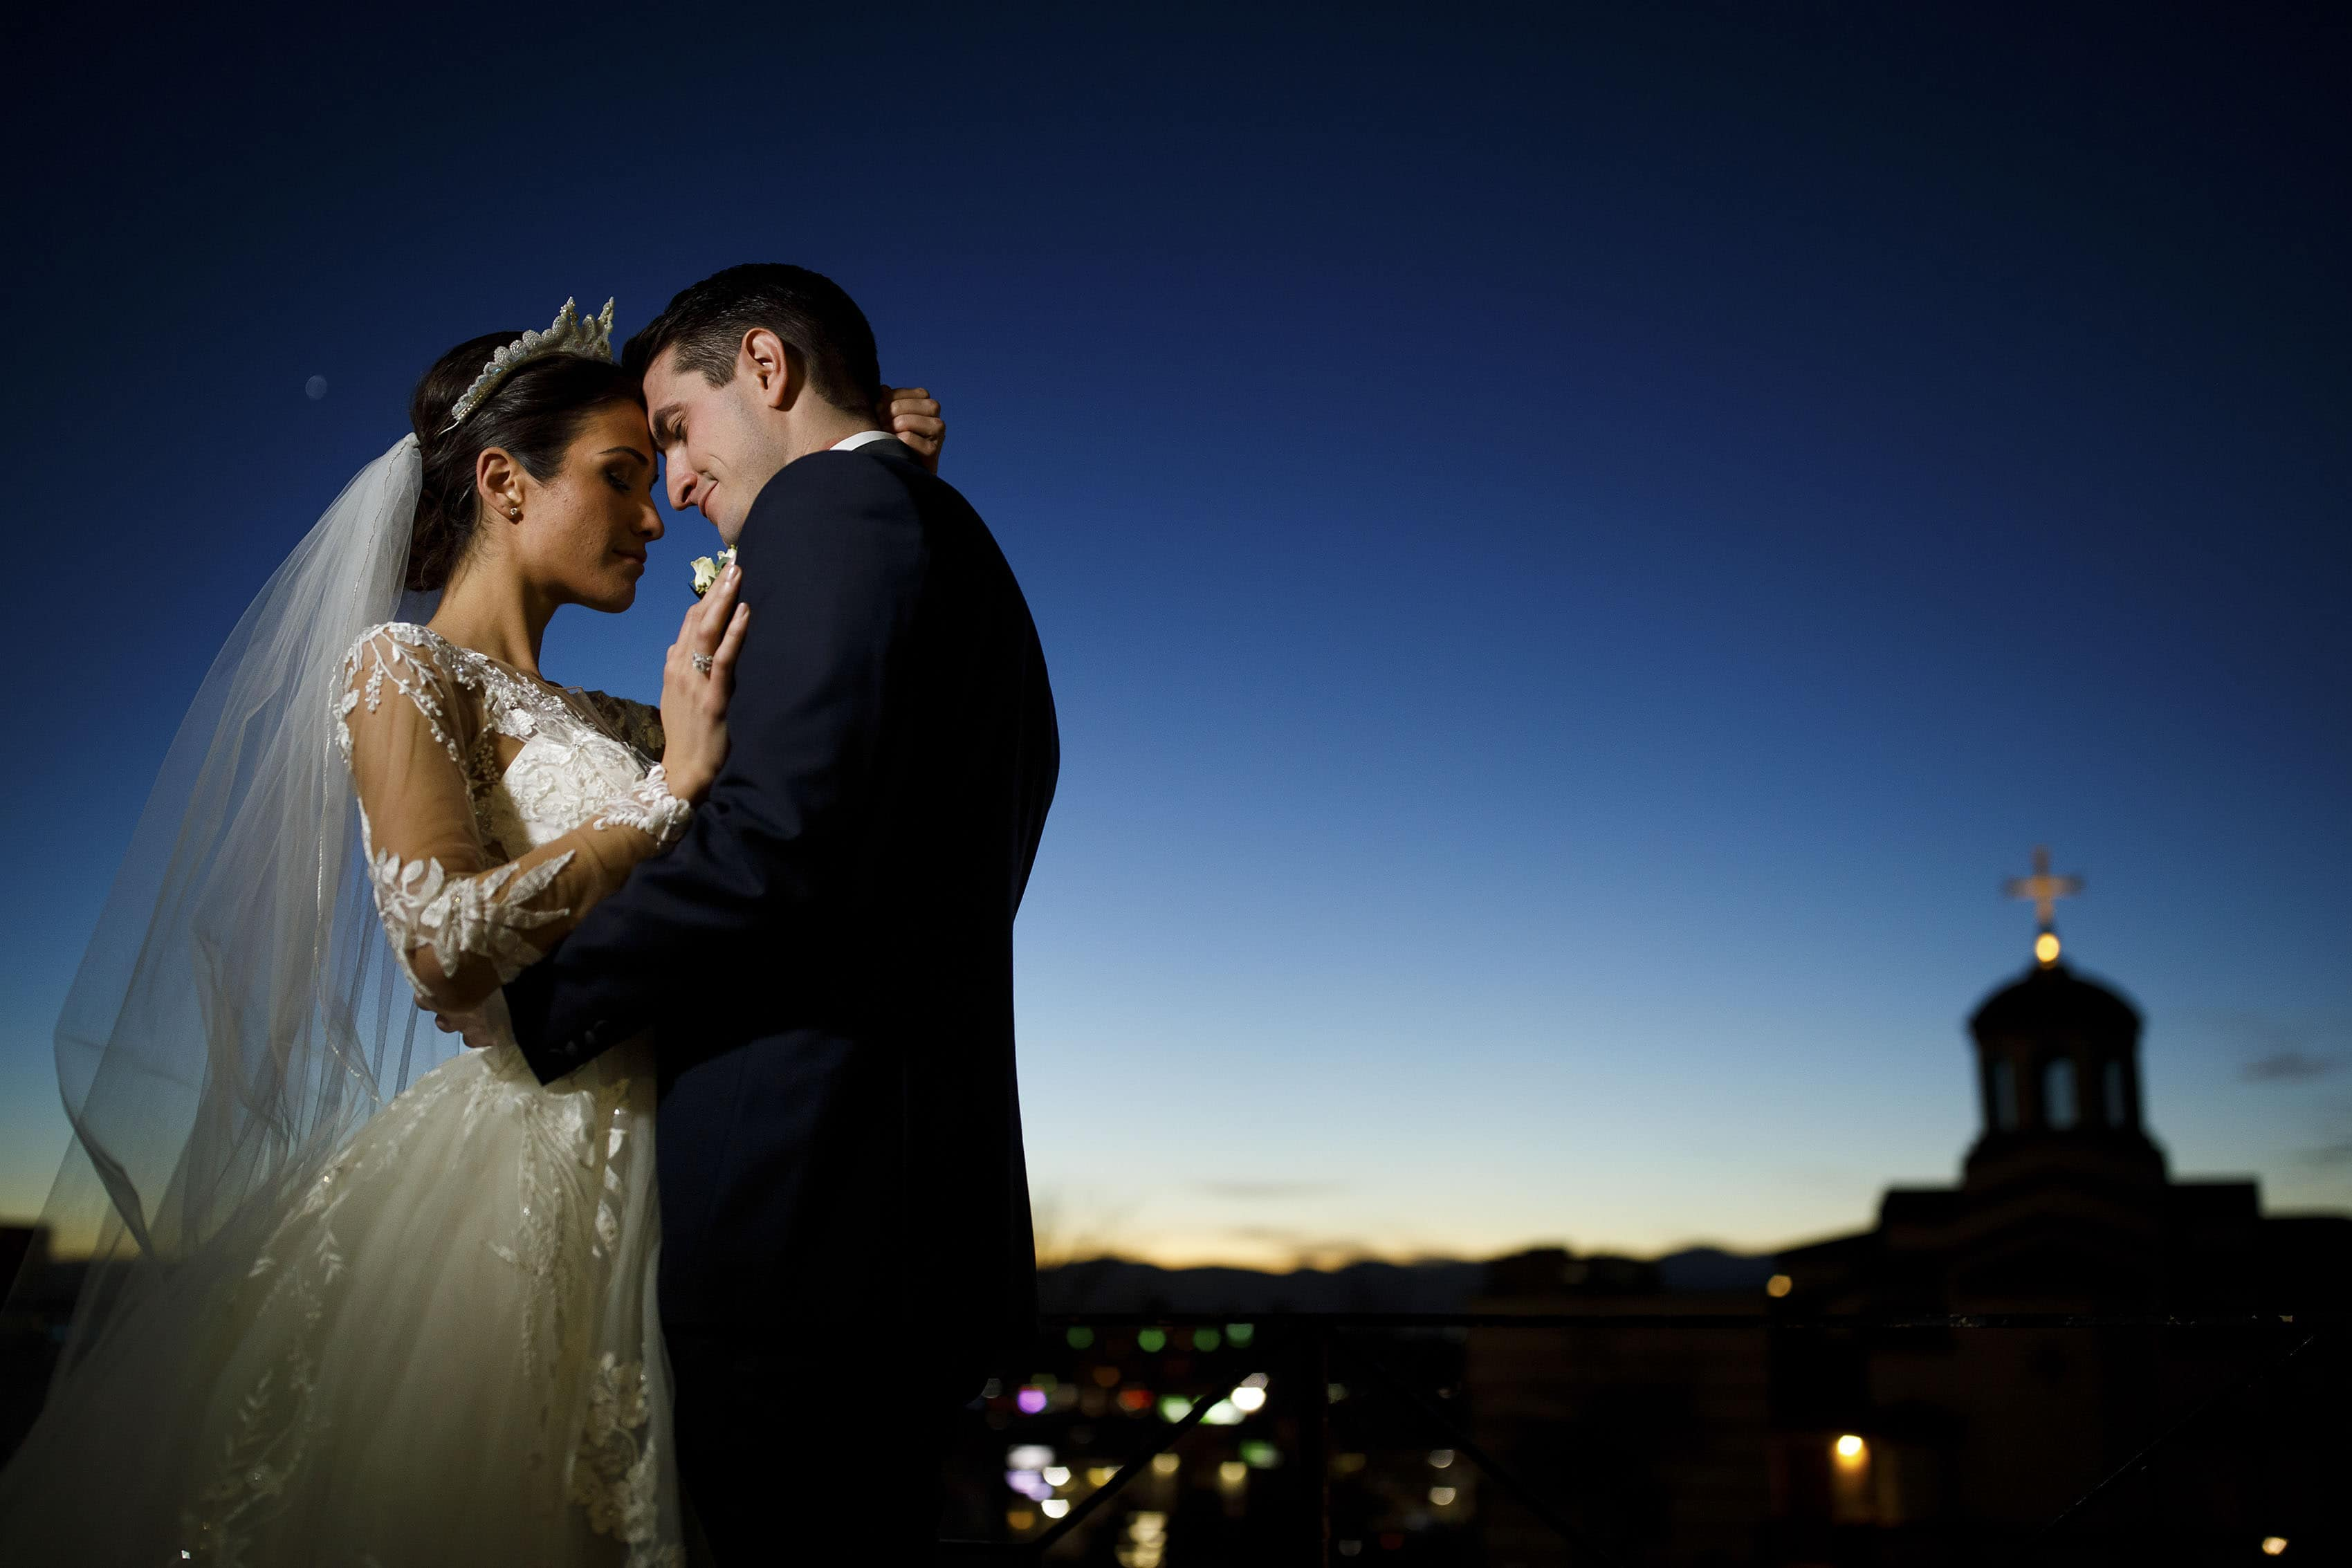 Newlyweds Alex and Ioanna share a moment outside the Assumption of the Theotokos Greek Orthodox Cathedral at twilight